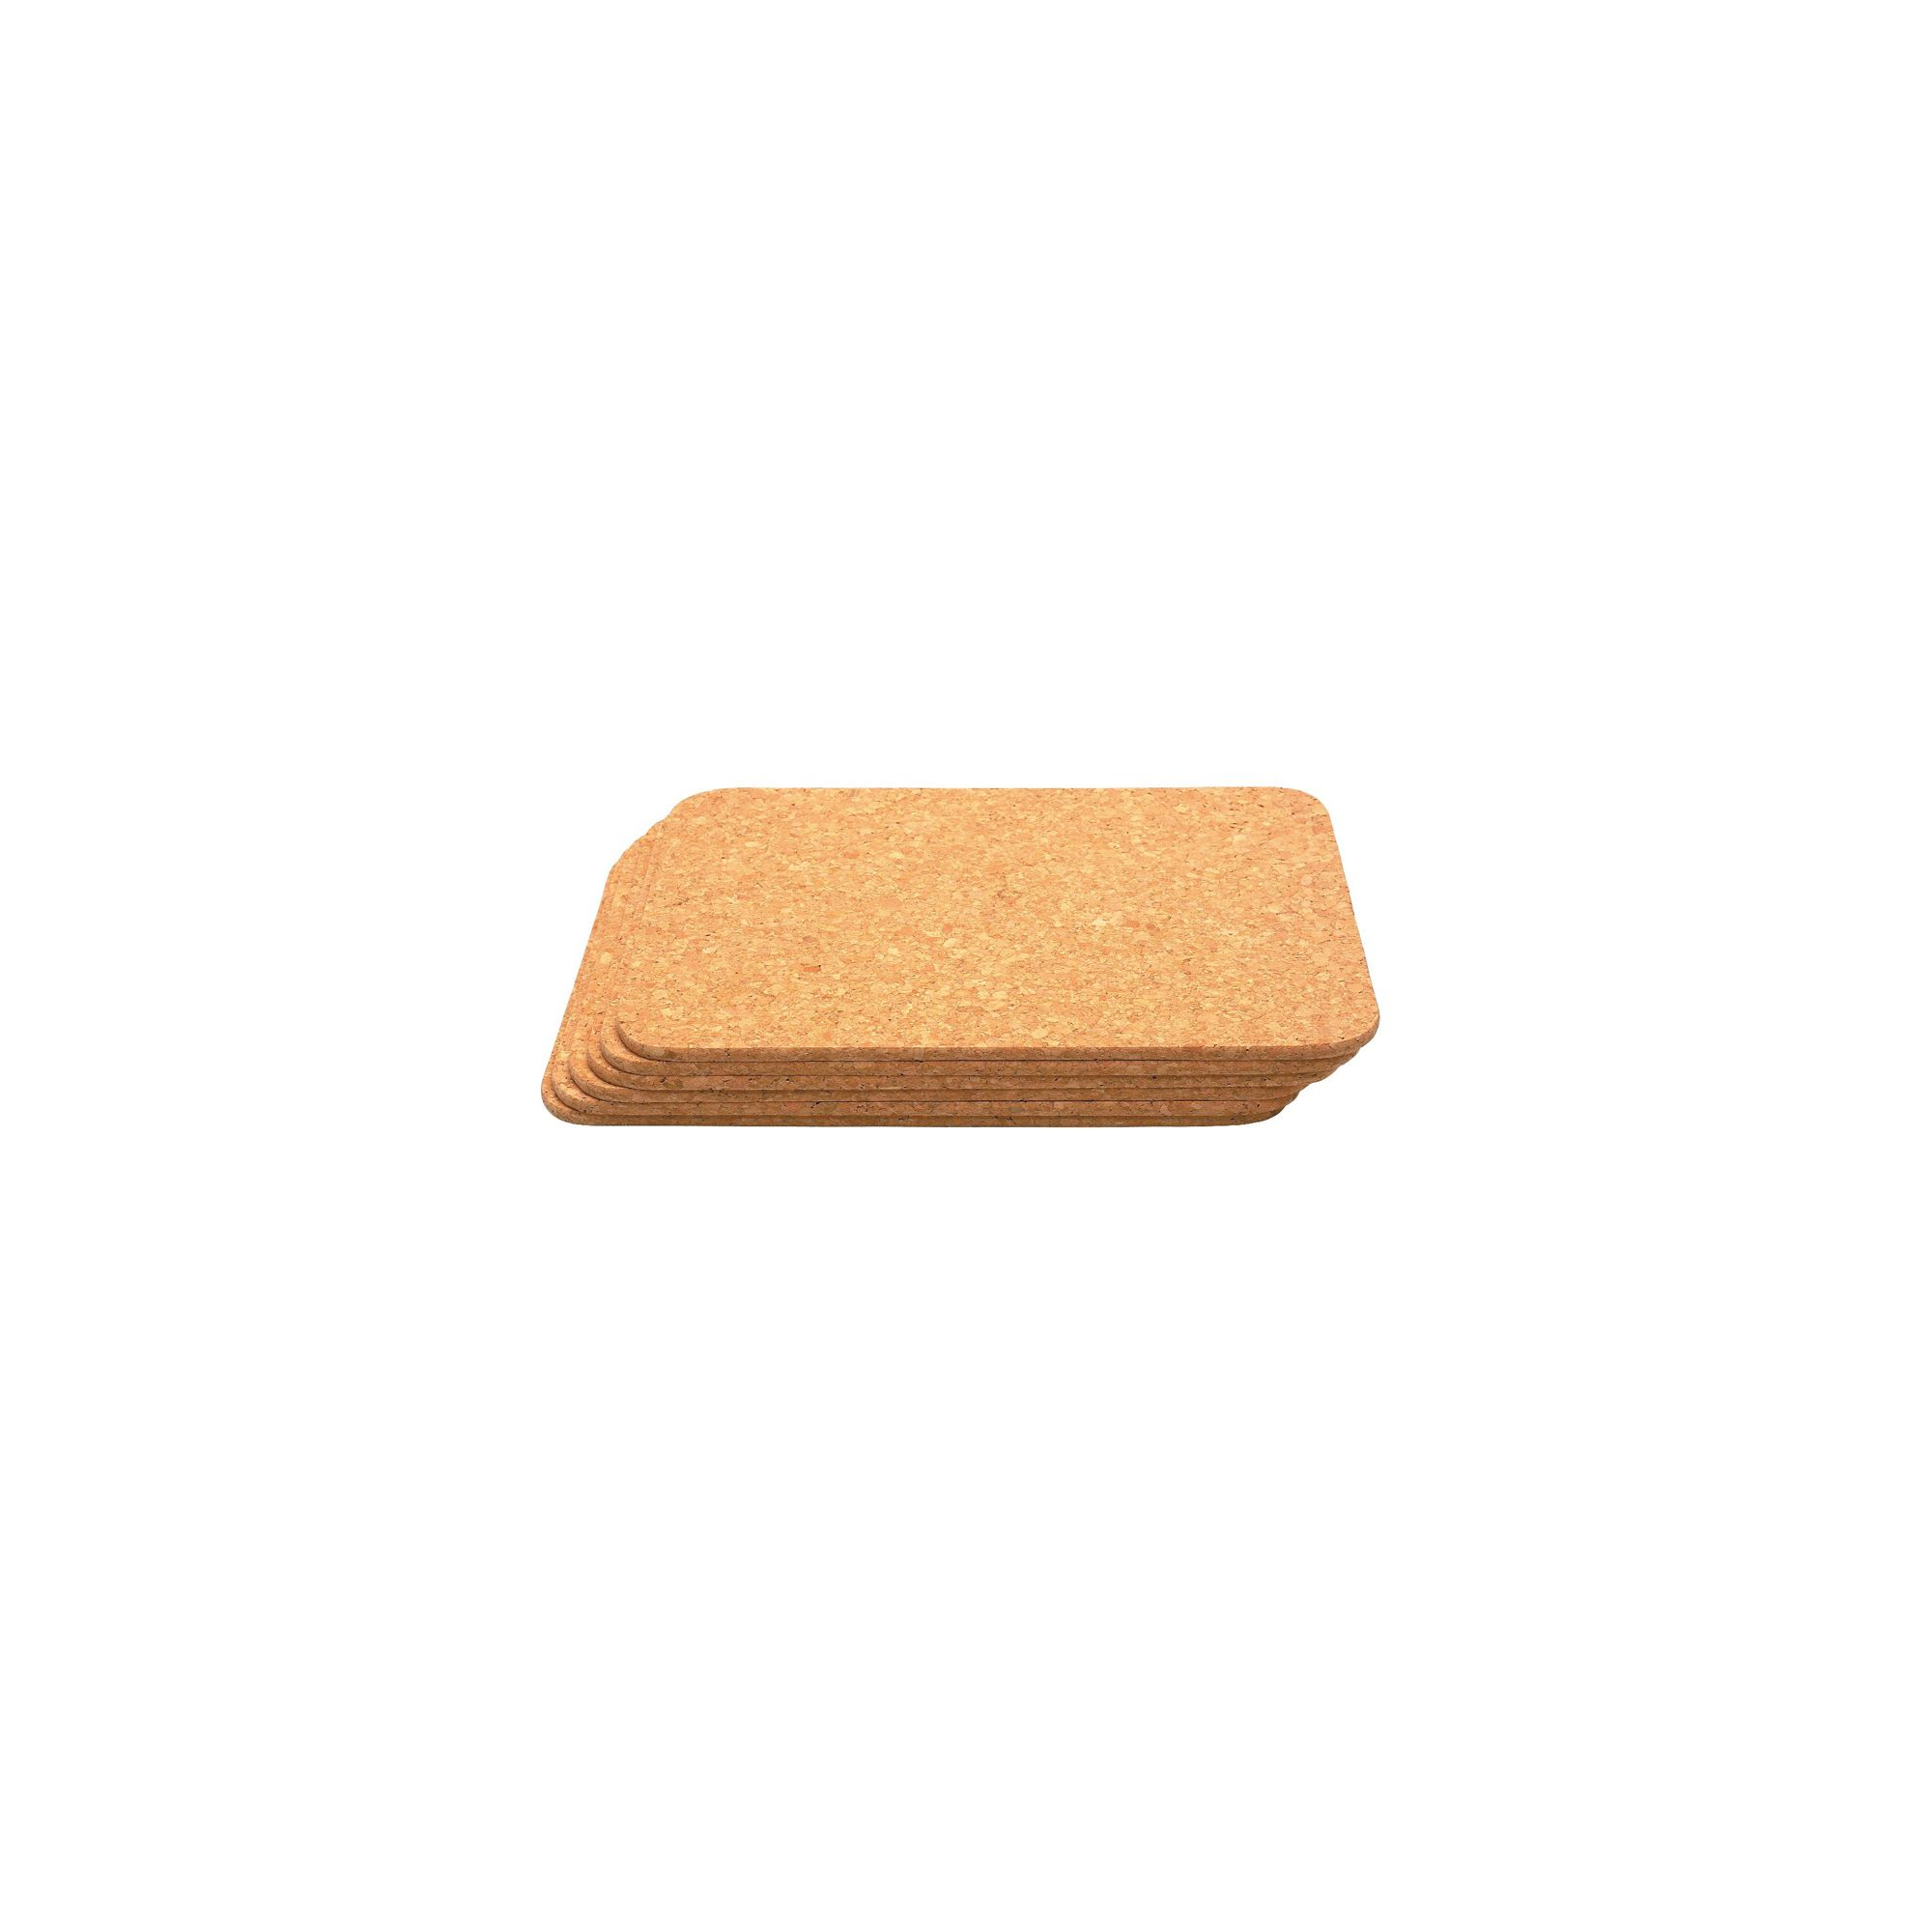 T And G Woodware Ltd Cork Mats Rectangular - 11x8 (Pack 6)